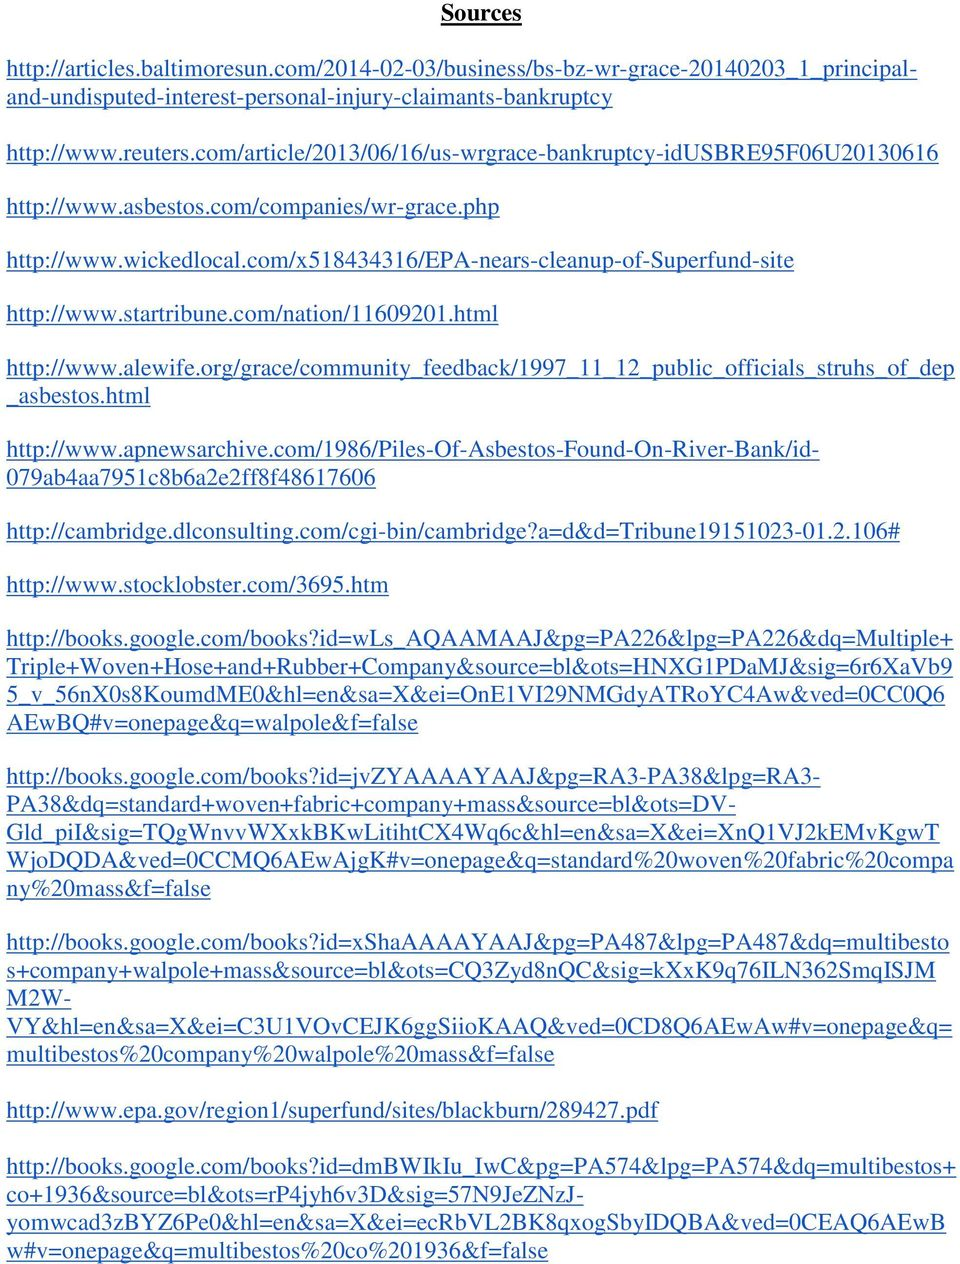 html http://articles.baltimoresun.com/2014-02-03/business/bs-bz-wr-grace-20140203_1_principaland-undisputed-interest-personal-injury-claimants-bankruptcy http://www.apnewsarchive.